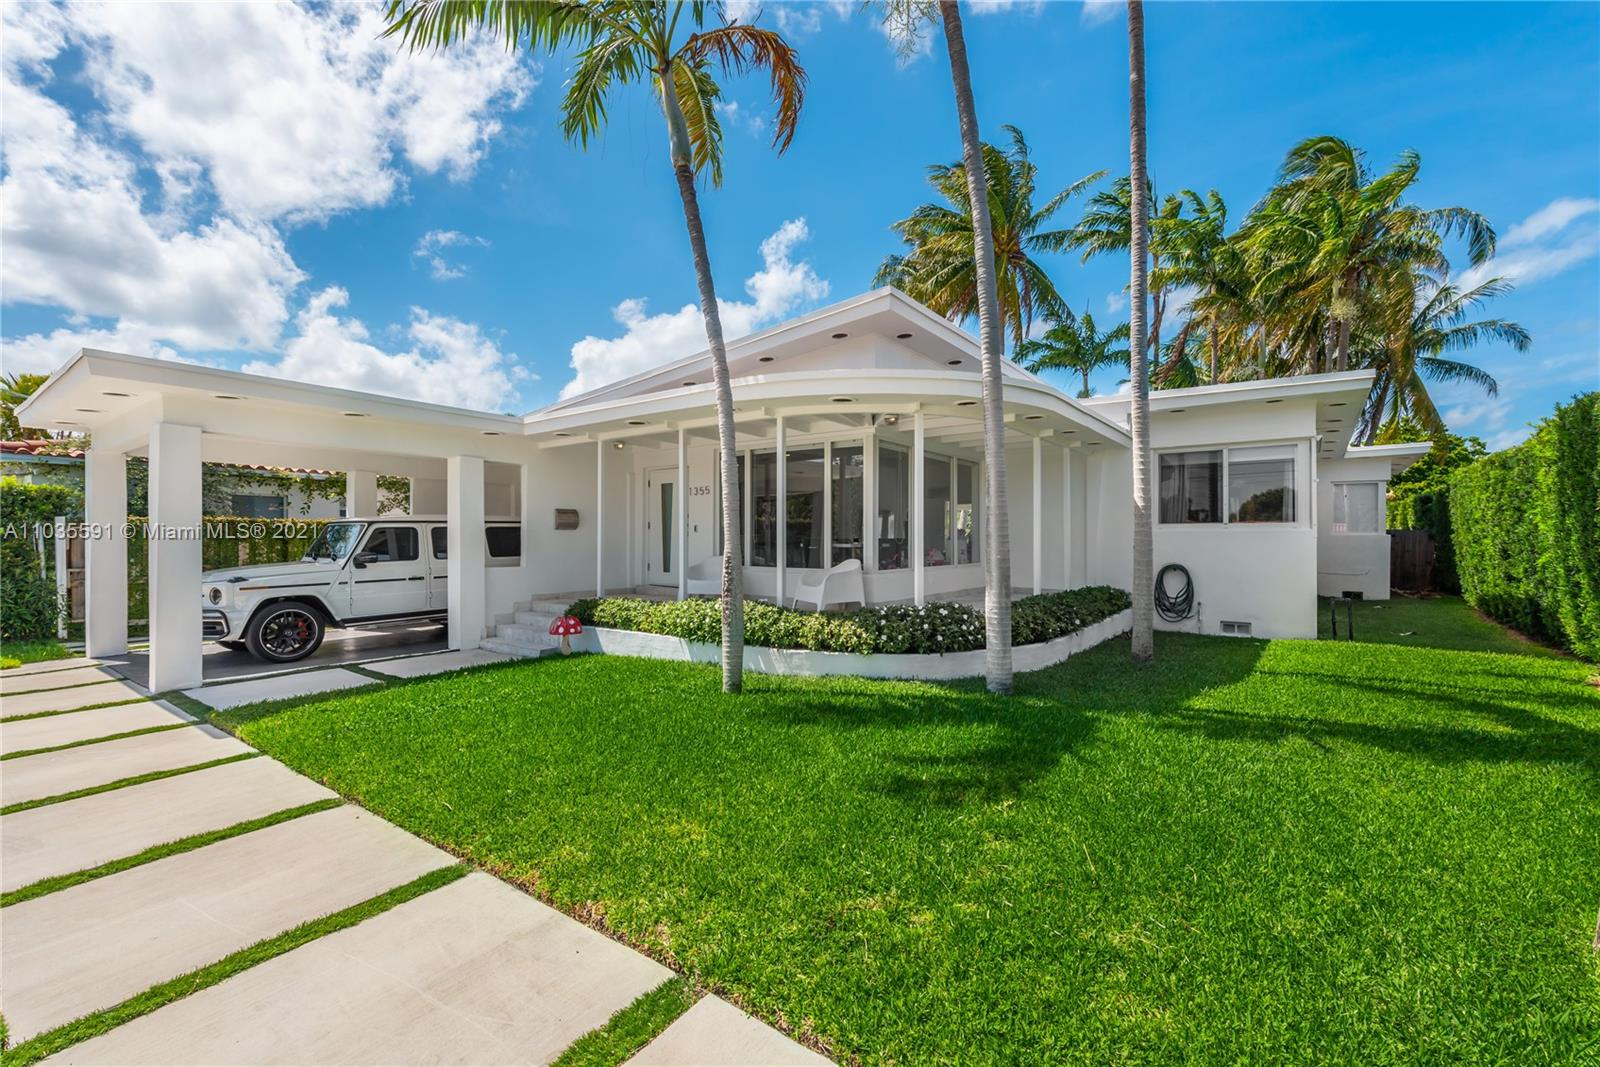 Fully renovated, waterfront, 3 bedroom, 2 bathroom home on private and gated Biscayne Point. Features include: Impact windows and doors, two covered patios, 60 ft of prime waterfrontage, gourmet kitchen, utility/laundry room, 1 covered carport, circular driveway, ample yard space. Excellent location in close proximity to Grade A Schools, beaches, A1A, Bal Harbour, North Beach.